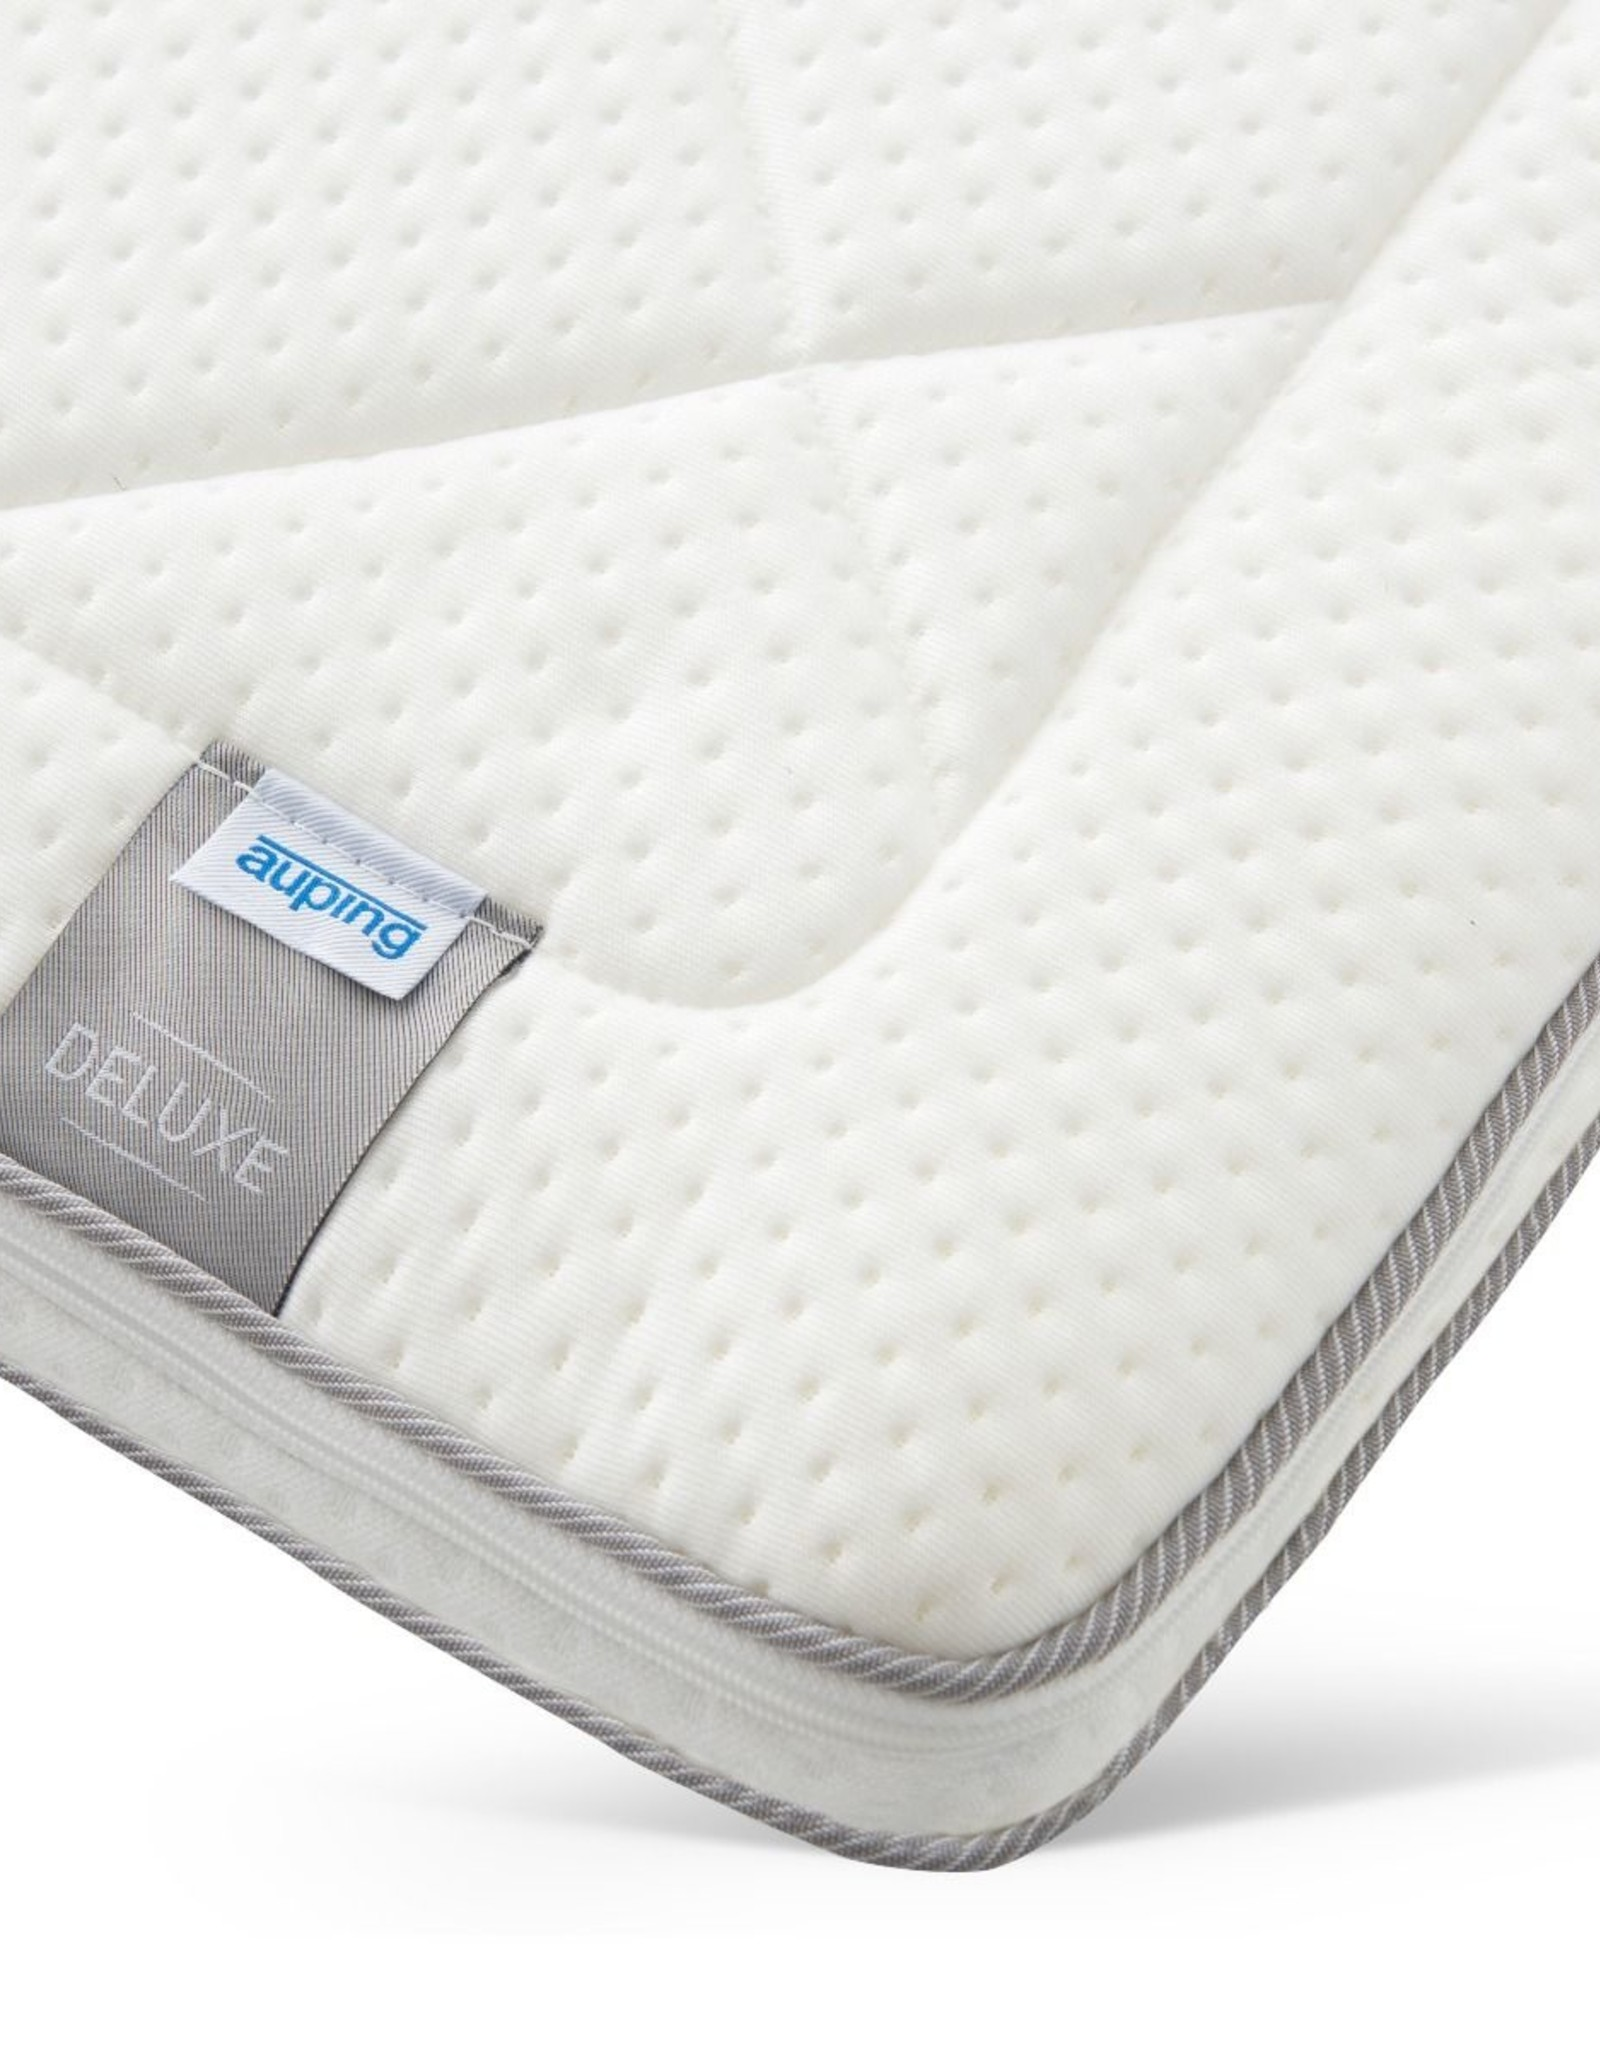 Auping Auping Deluxe Topdekmatras